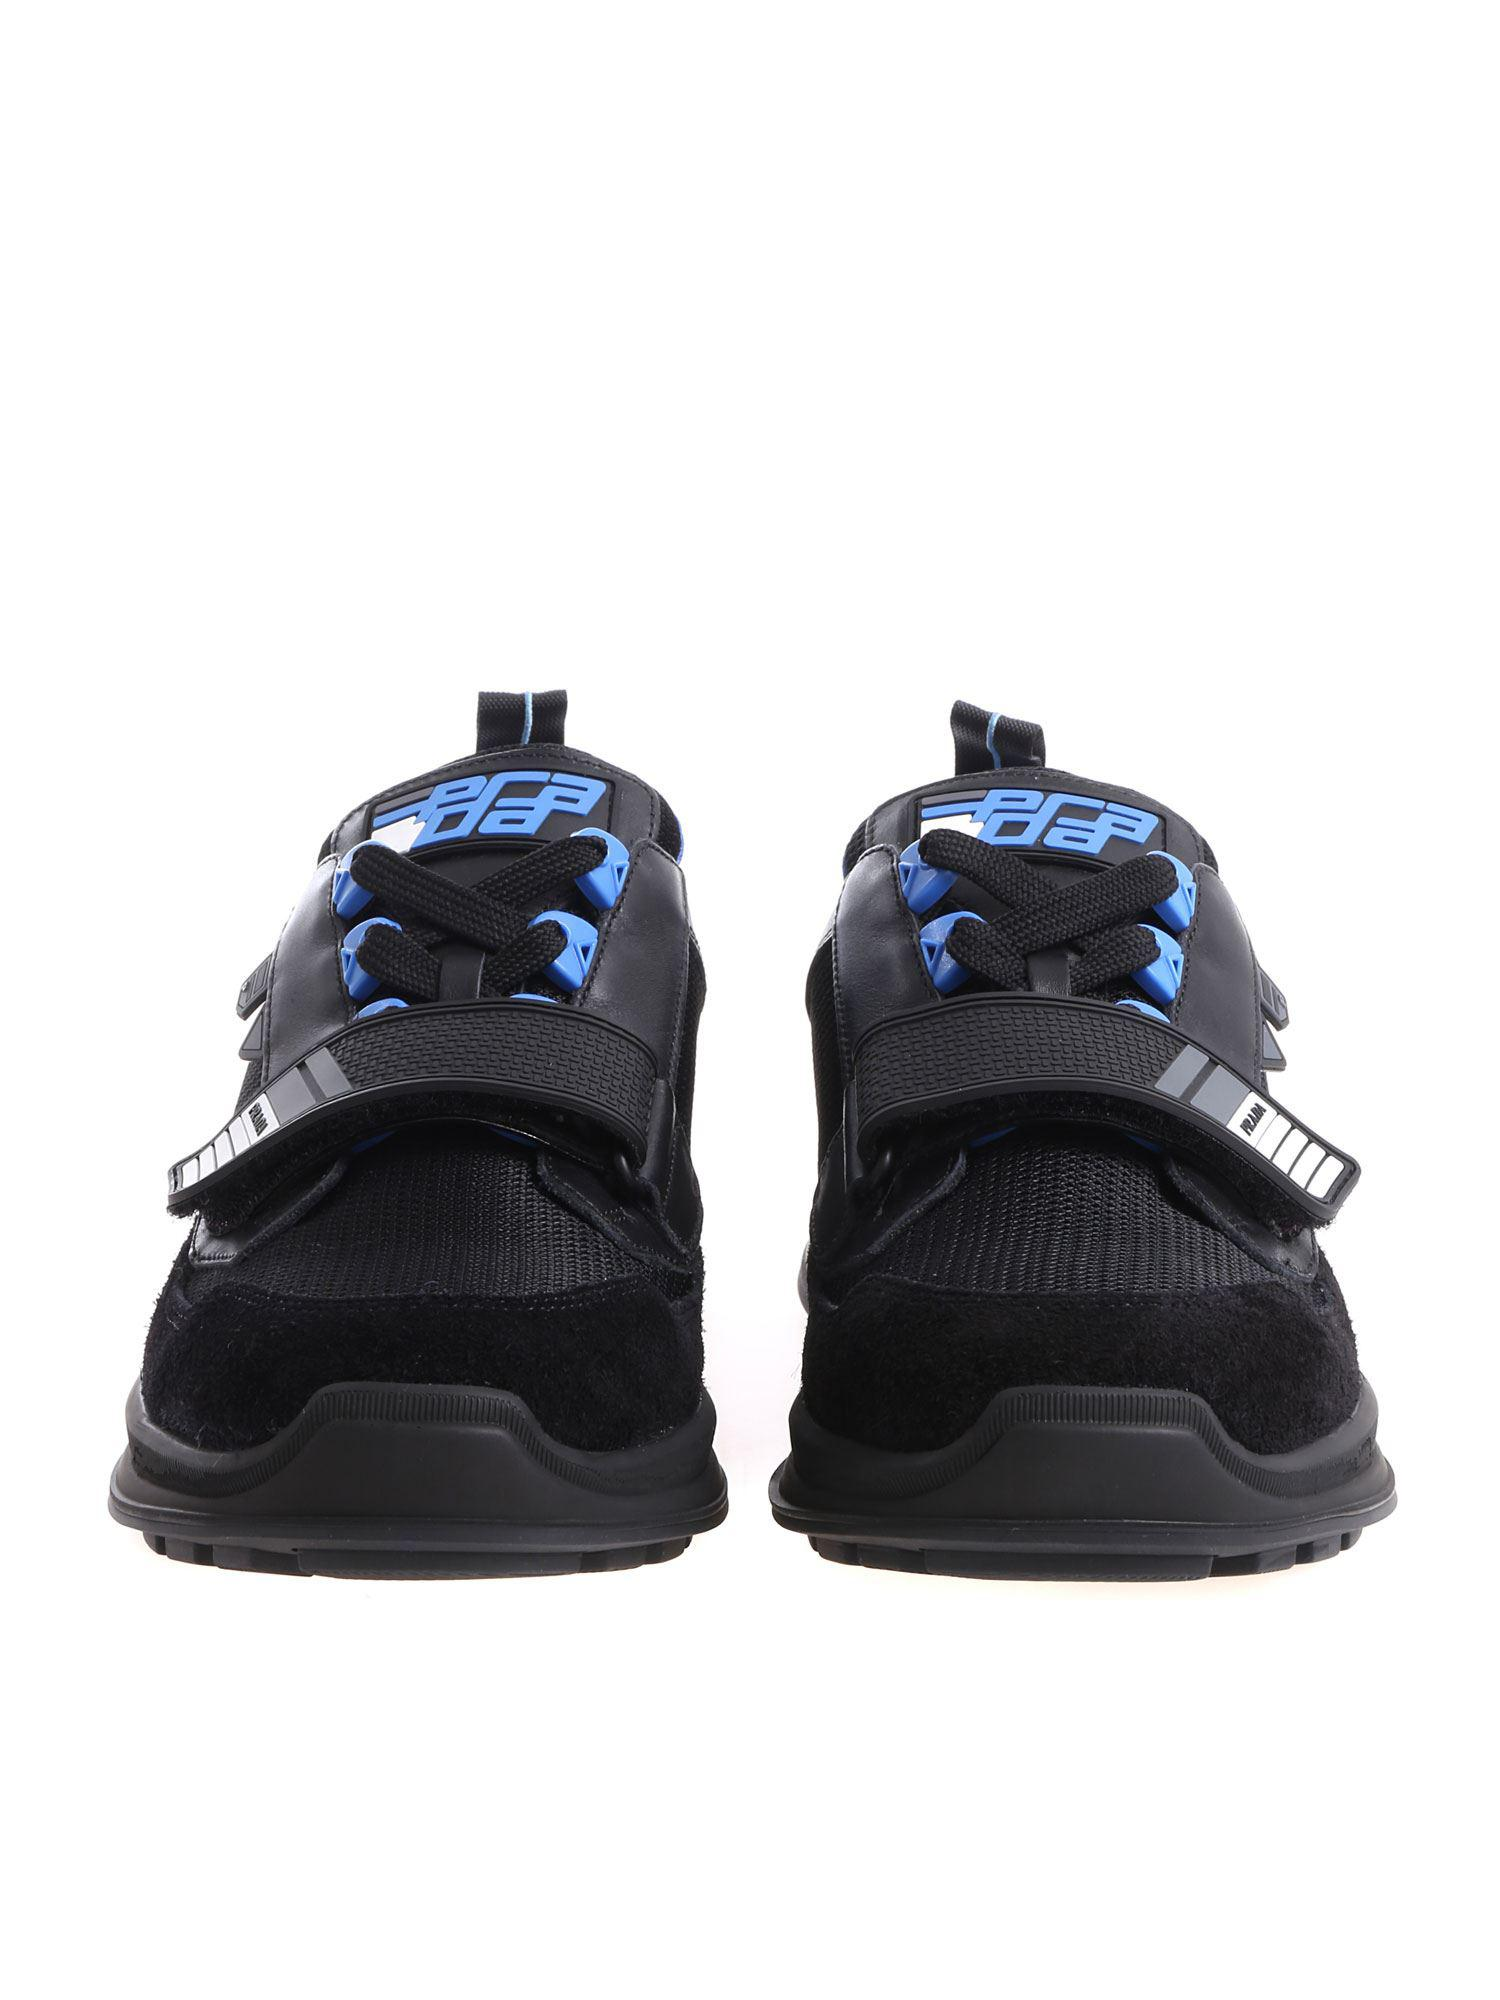 d5d3991acda prada-black-Black-Sneakers-With-Blue-Rubber-Details.jpeg